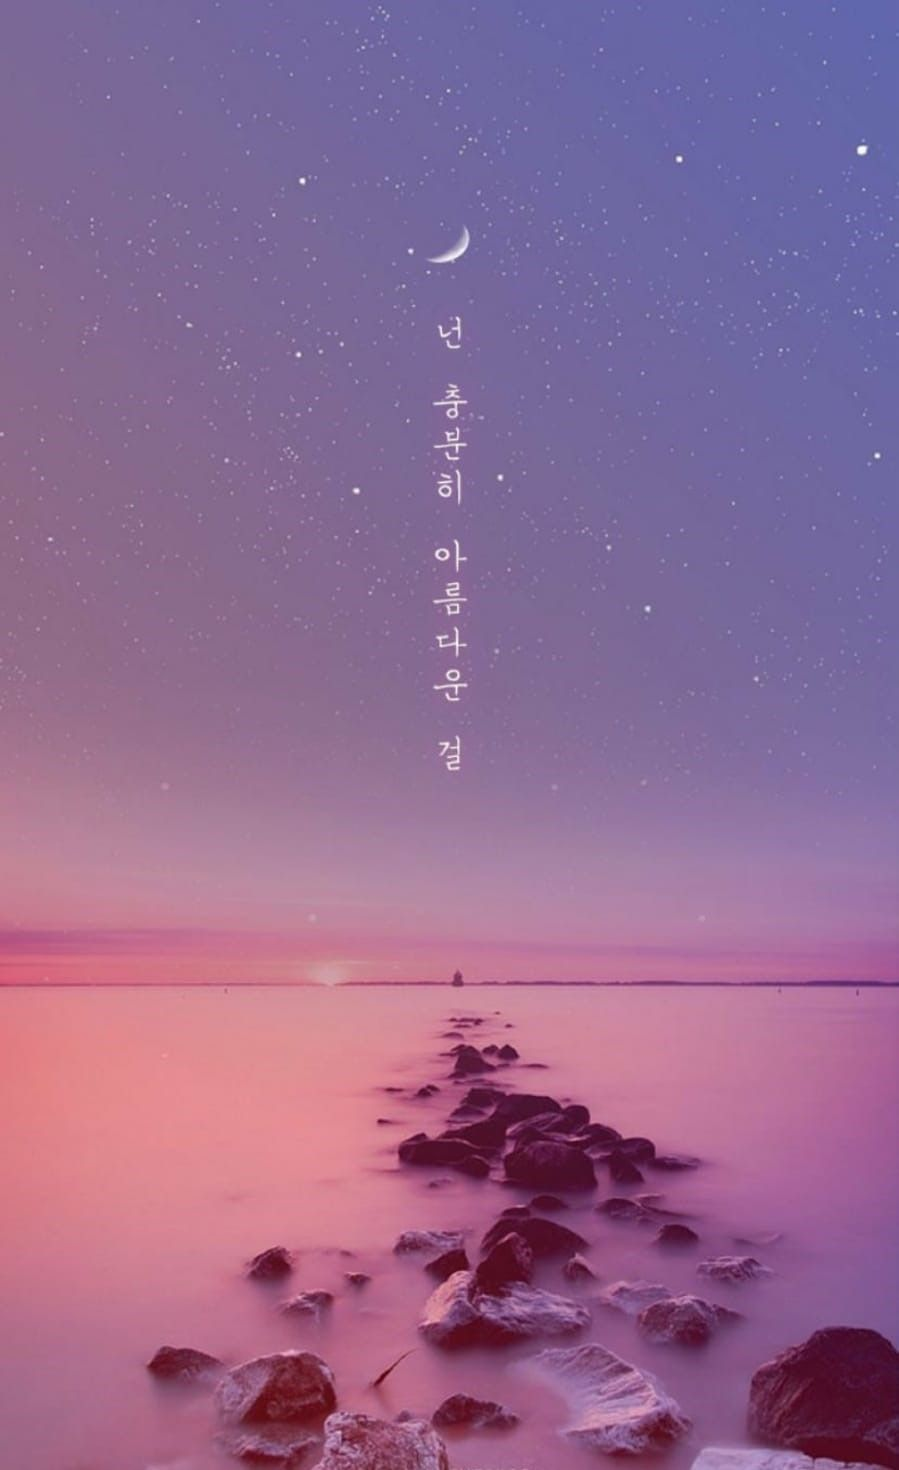 Lock Screen Korean Wallpaper Iphone In 2020 Korea Wallpaper Aesthetic Wallpapers Live Wallpaper Iphone